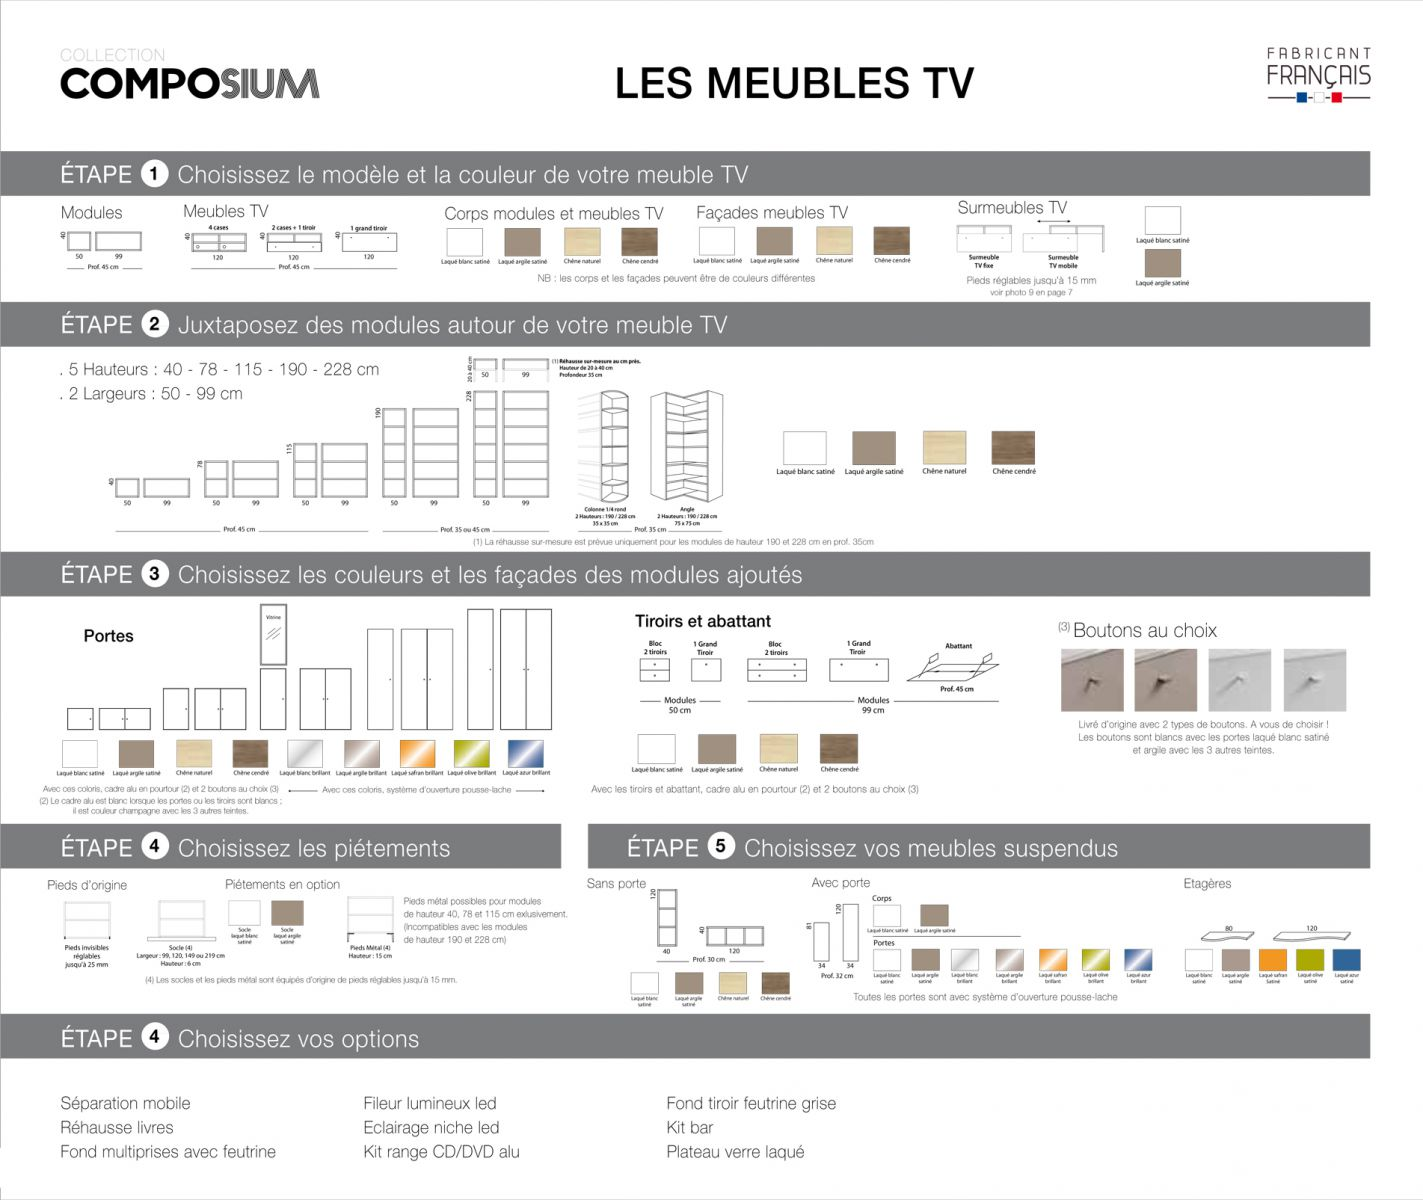 Ol ron meubles c lio composium ol ron meubles for Celio fr meuble